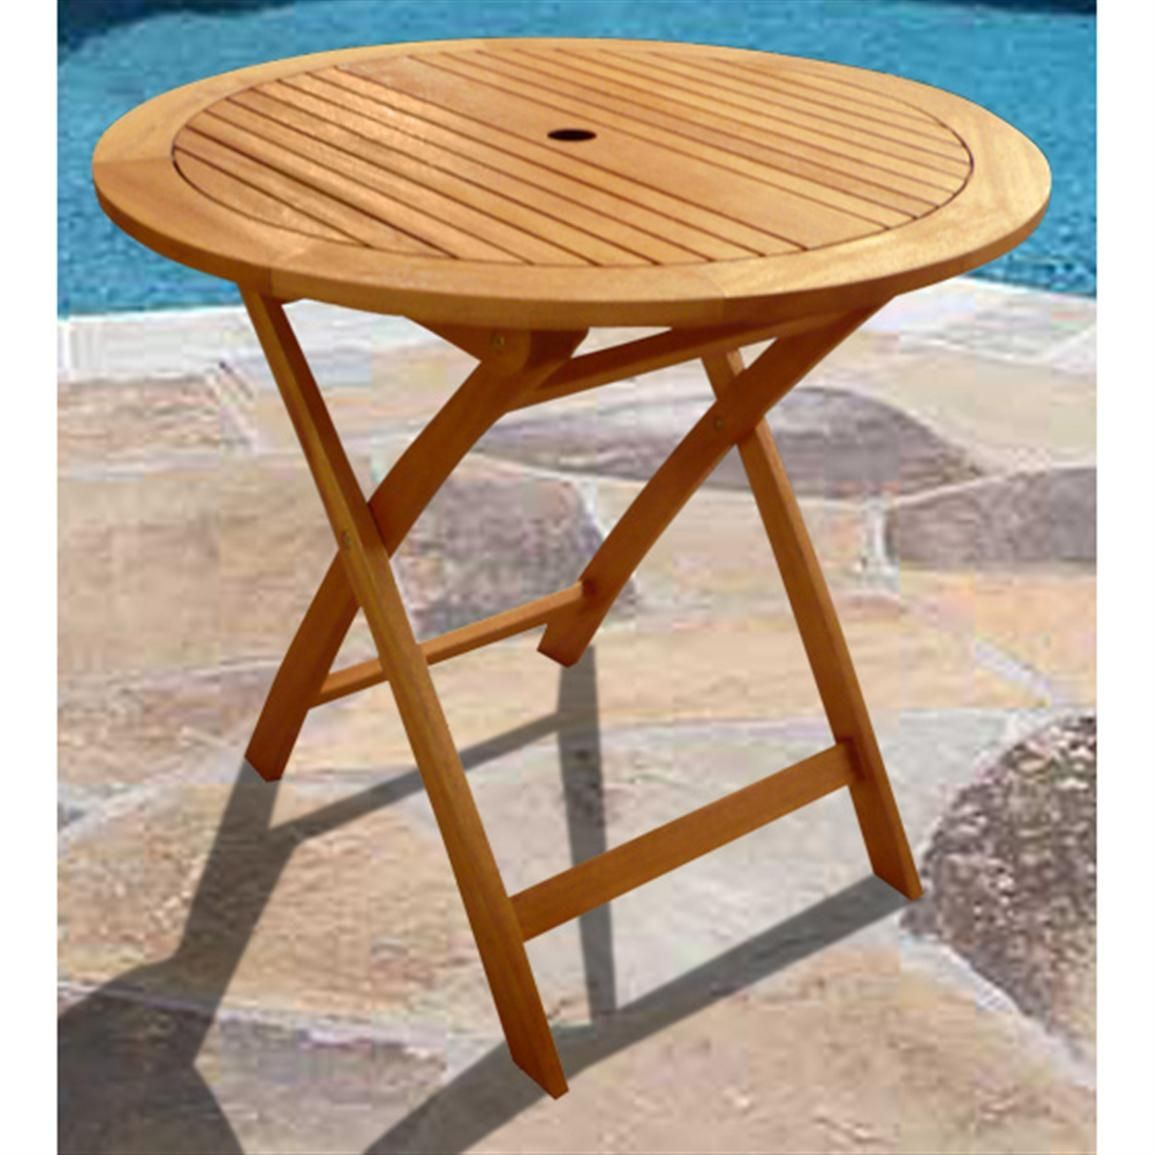 target folding chairs side wood patio and wooden round furniture a teak tops table set sets